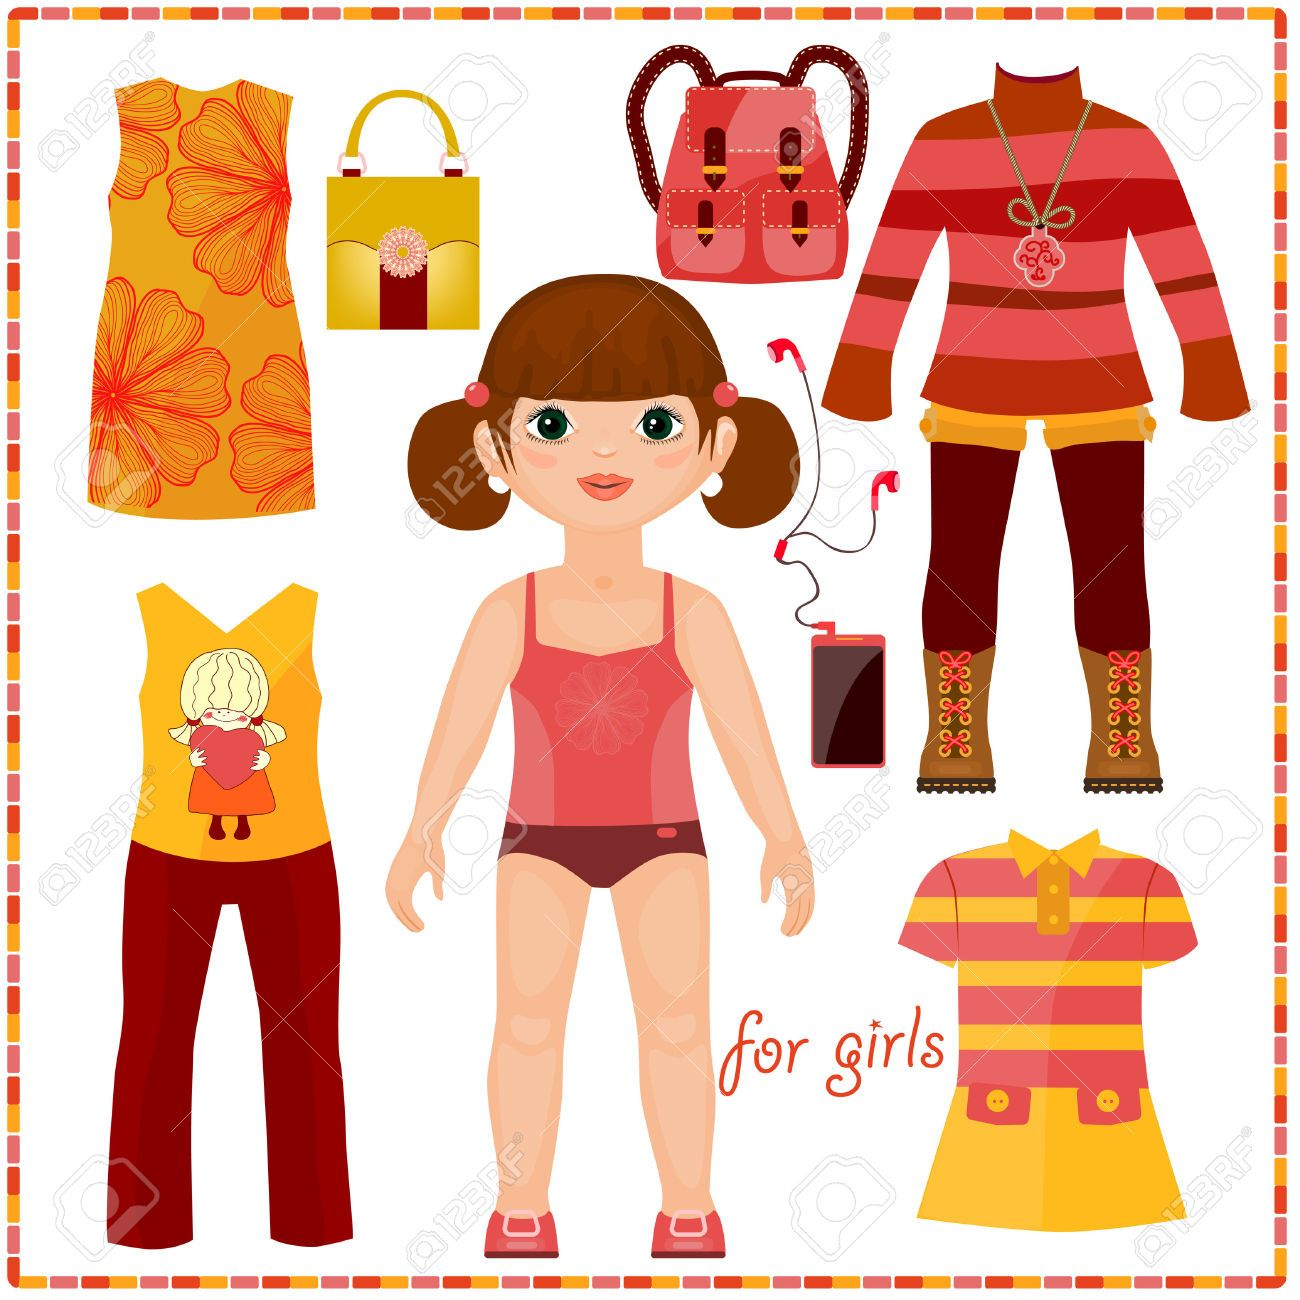 paper doll with clothes clipart.